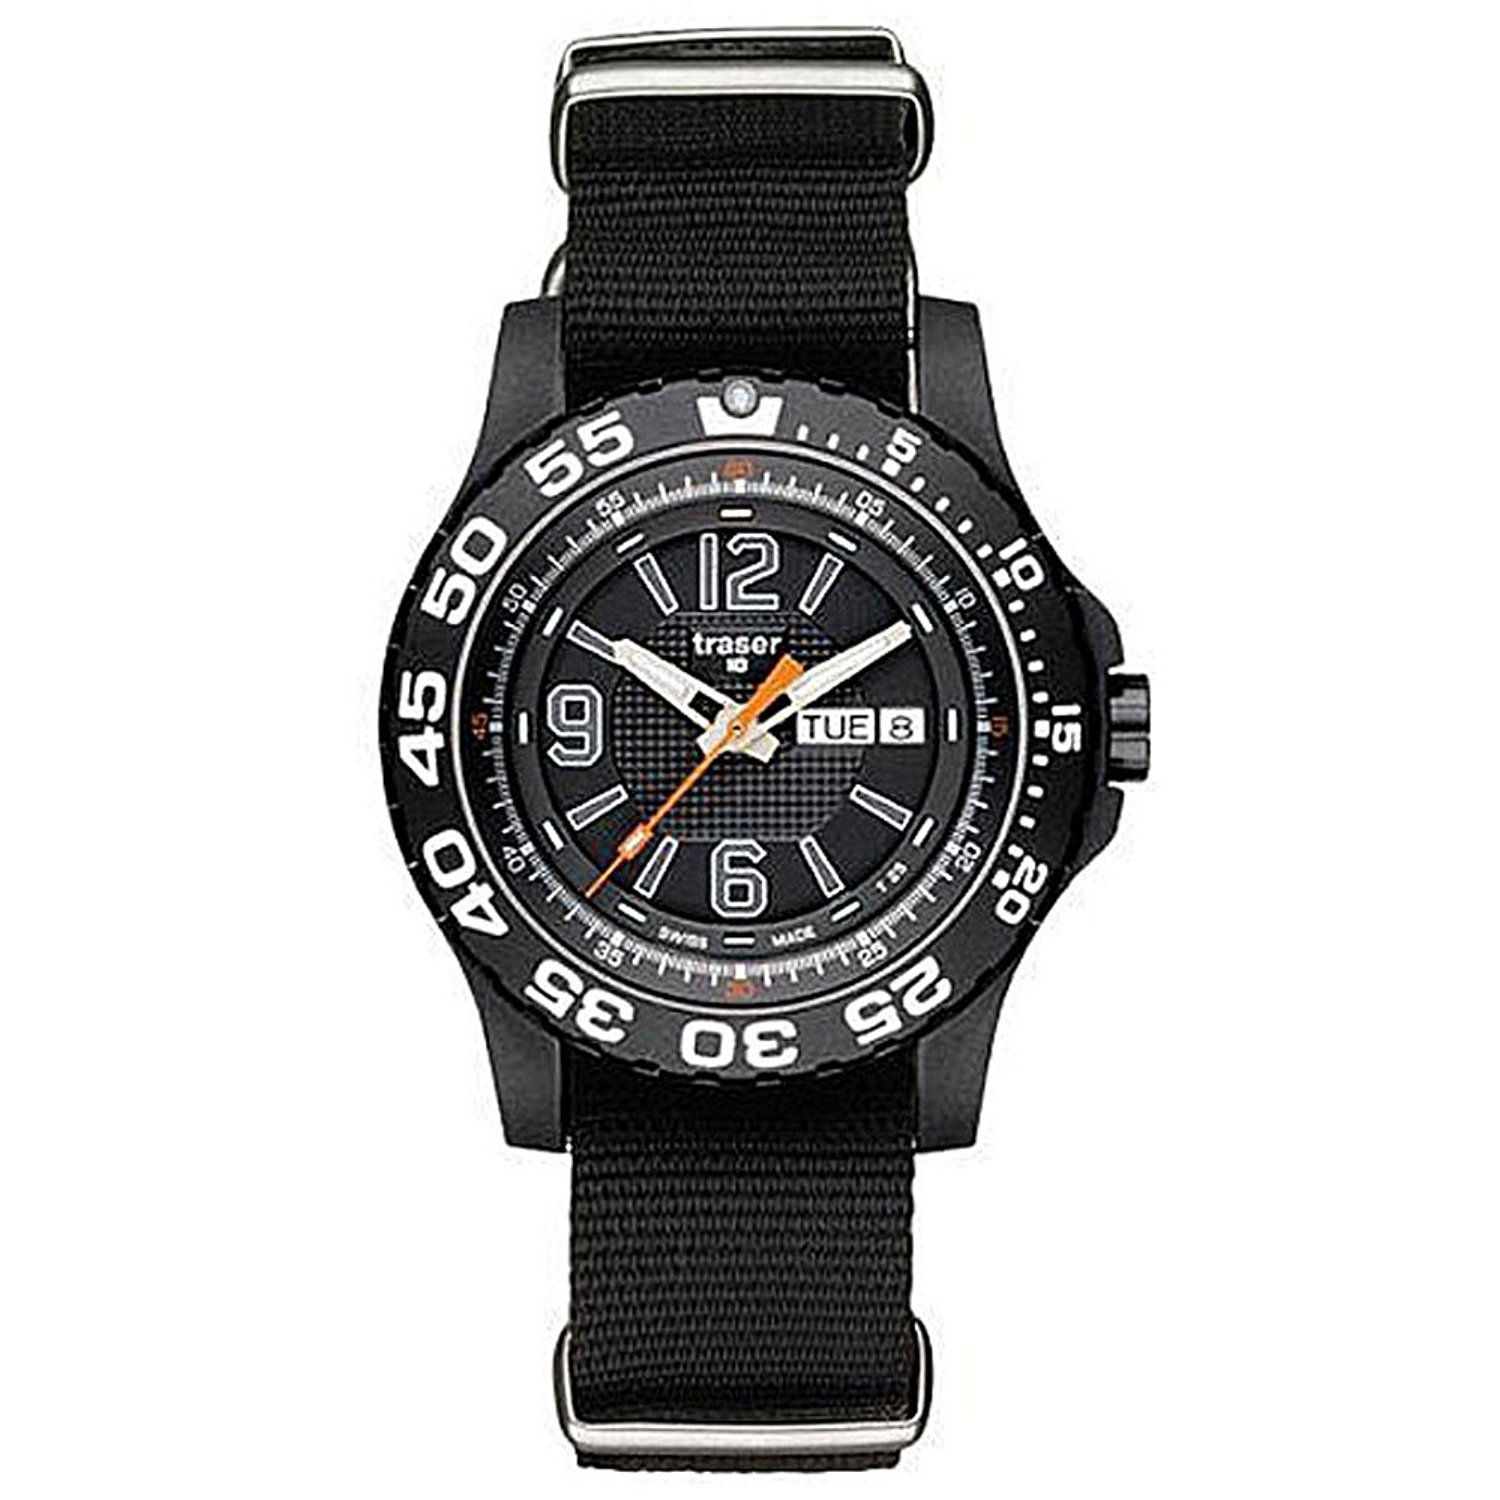 086eb5da382f Amazon.com: Traser P6600 Extreme Sport Watch on NATO Strap P6600.41F.0S.01:  Watches